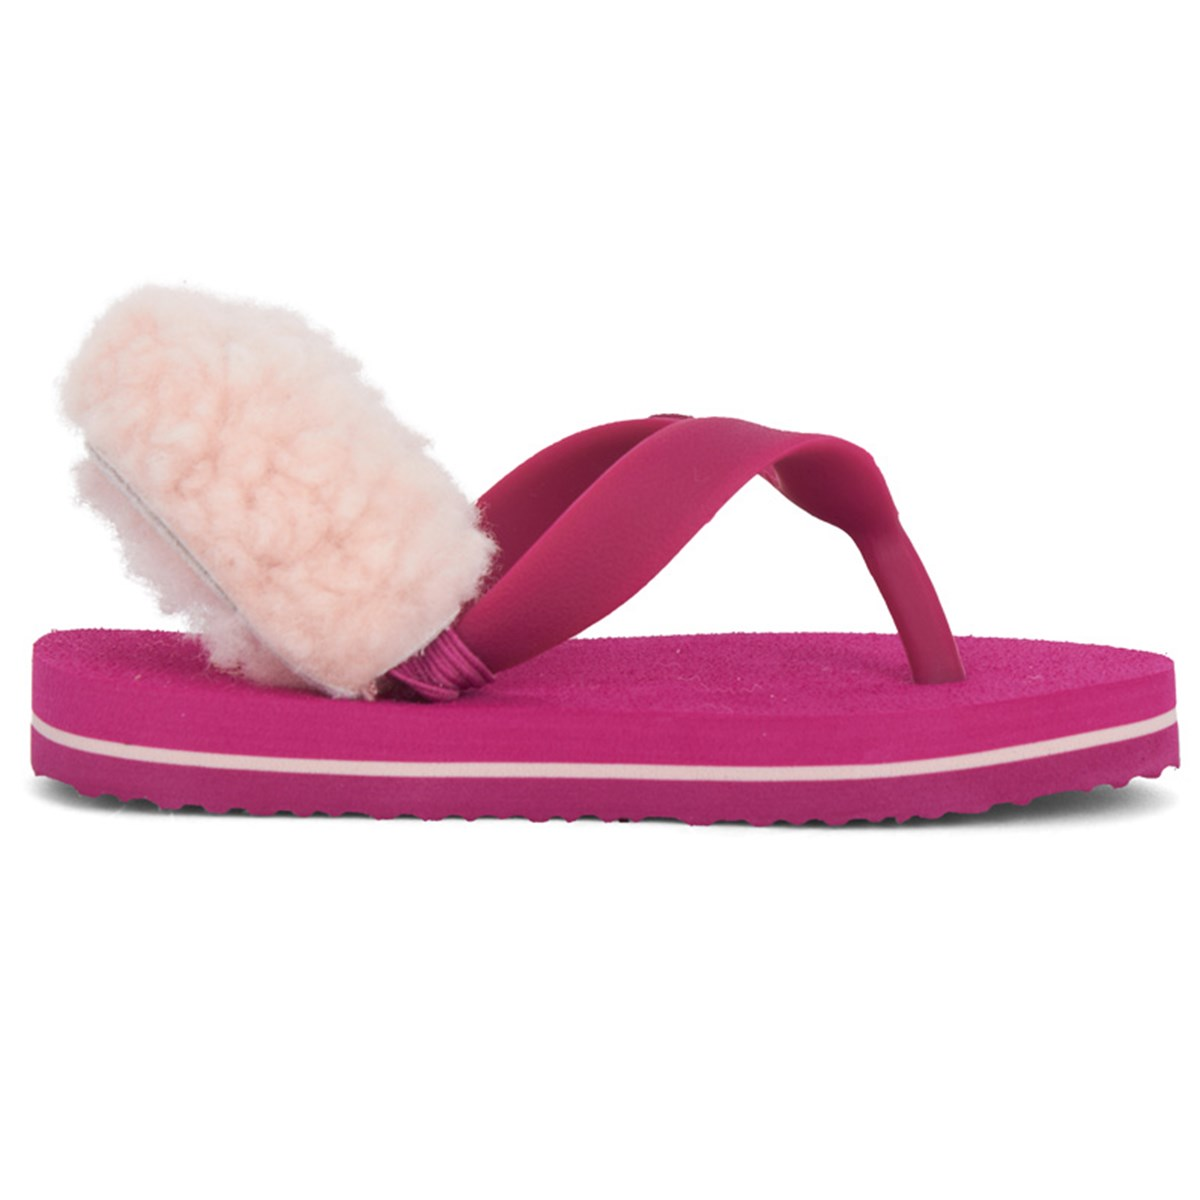 ugg fur lined flip flops. Black Bedroom Furniture Sets. Home Design Ideas